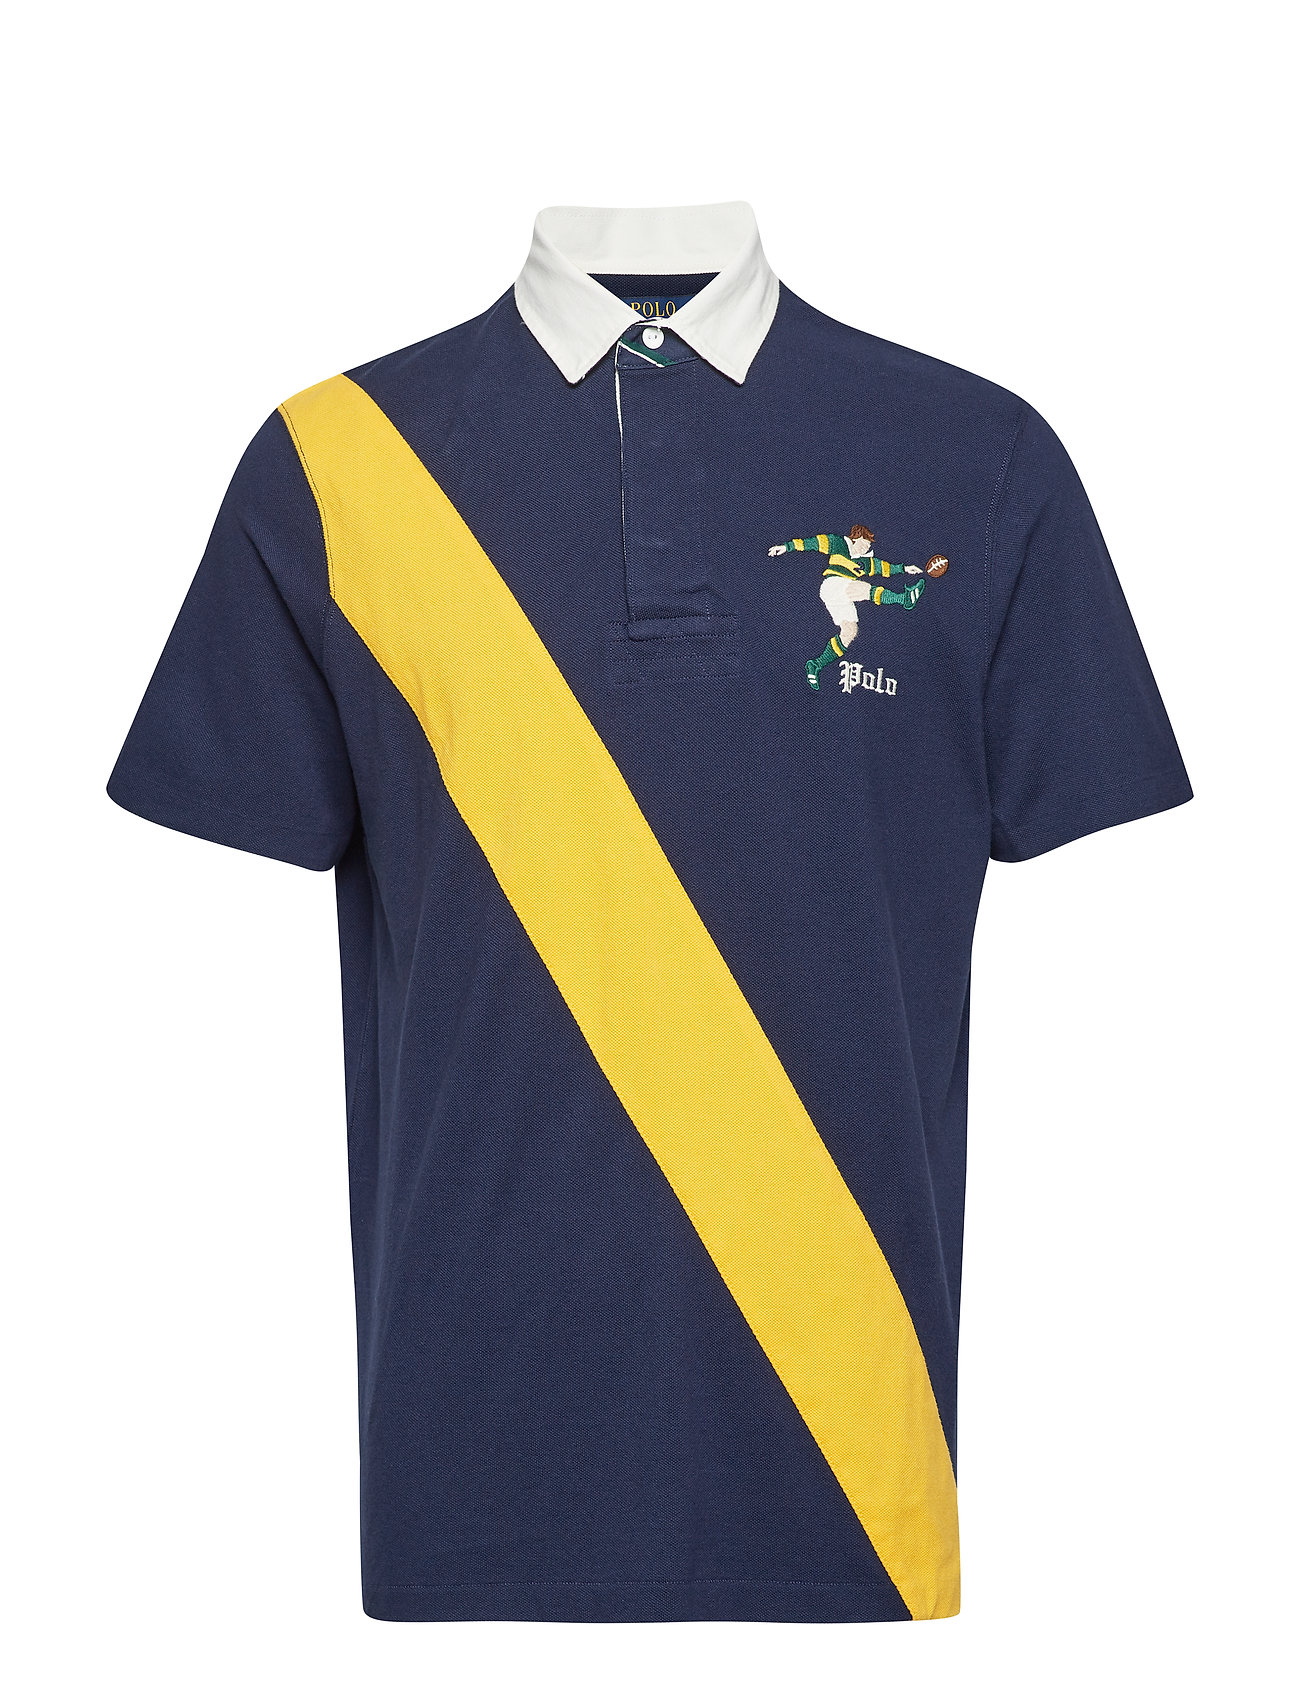 Polo Ralph Lauren Classic Fit Mesh Rugby Shirt - CRUISE NAVY MULTI